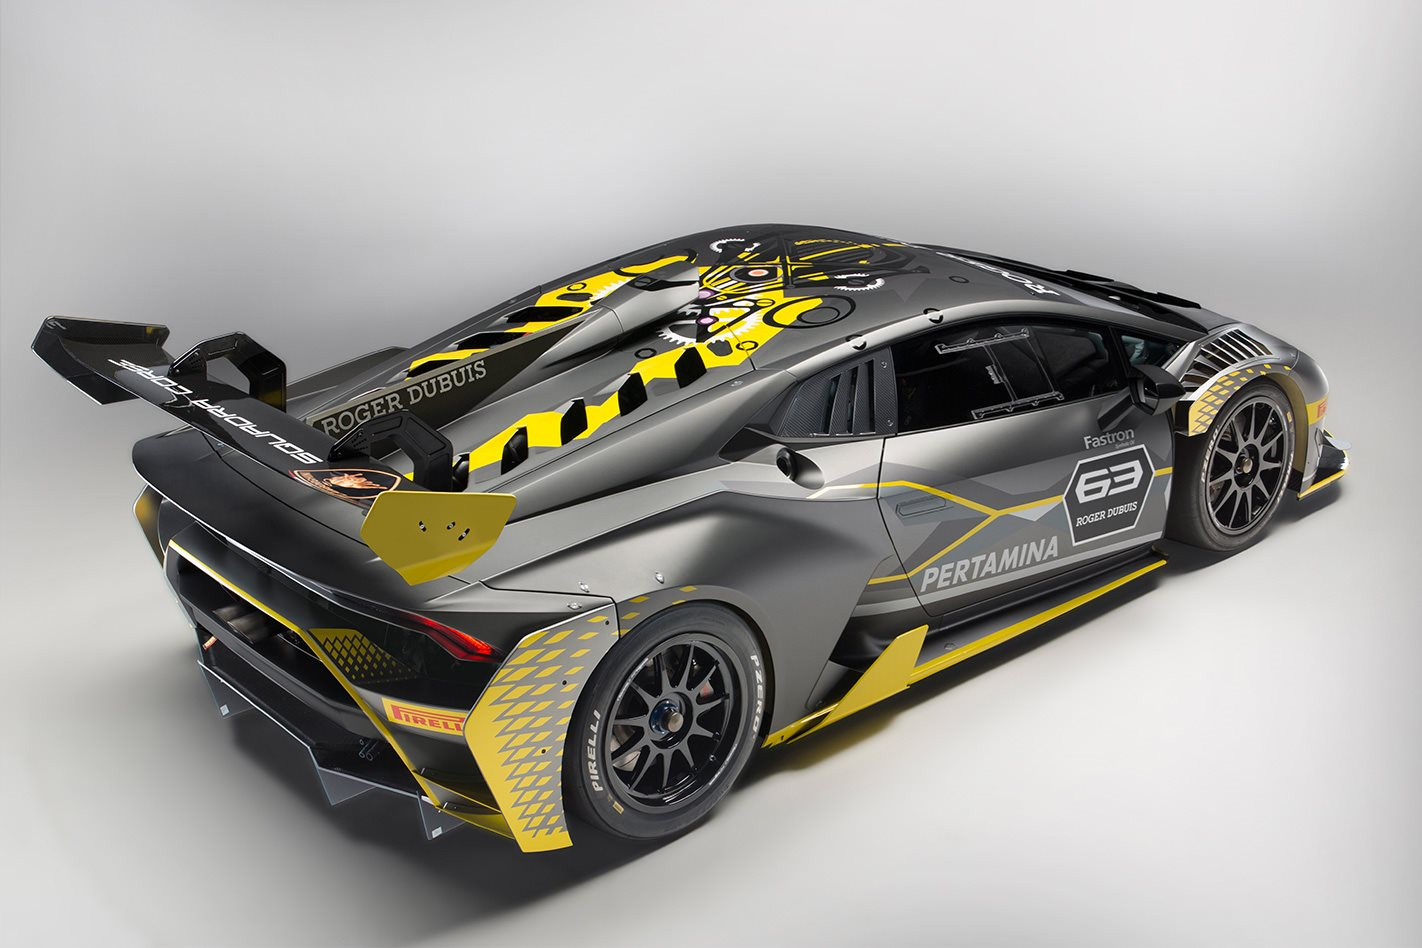 This Unhinged Huracan Race Car Is The Cheapest Lambo You Can Buy